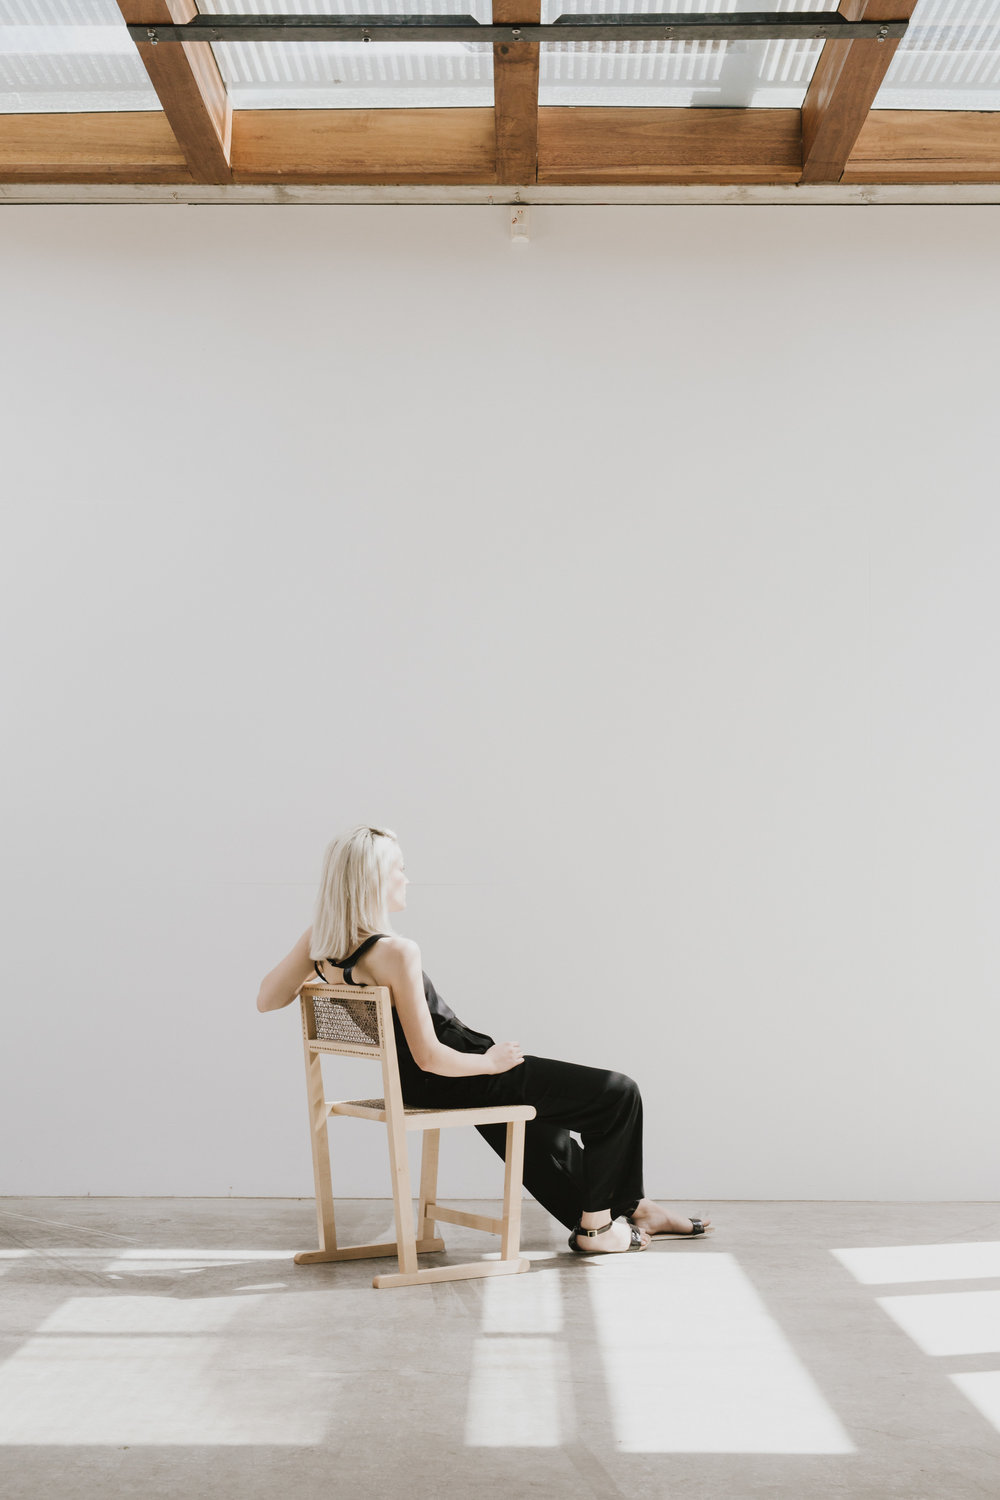 Furniture design minimalist editorial by Jenny Wu